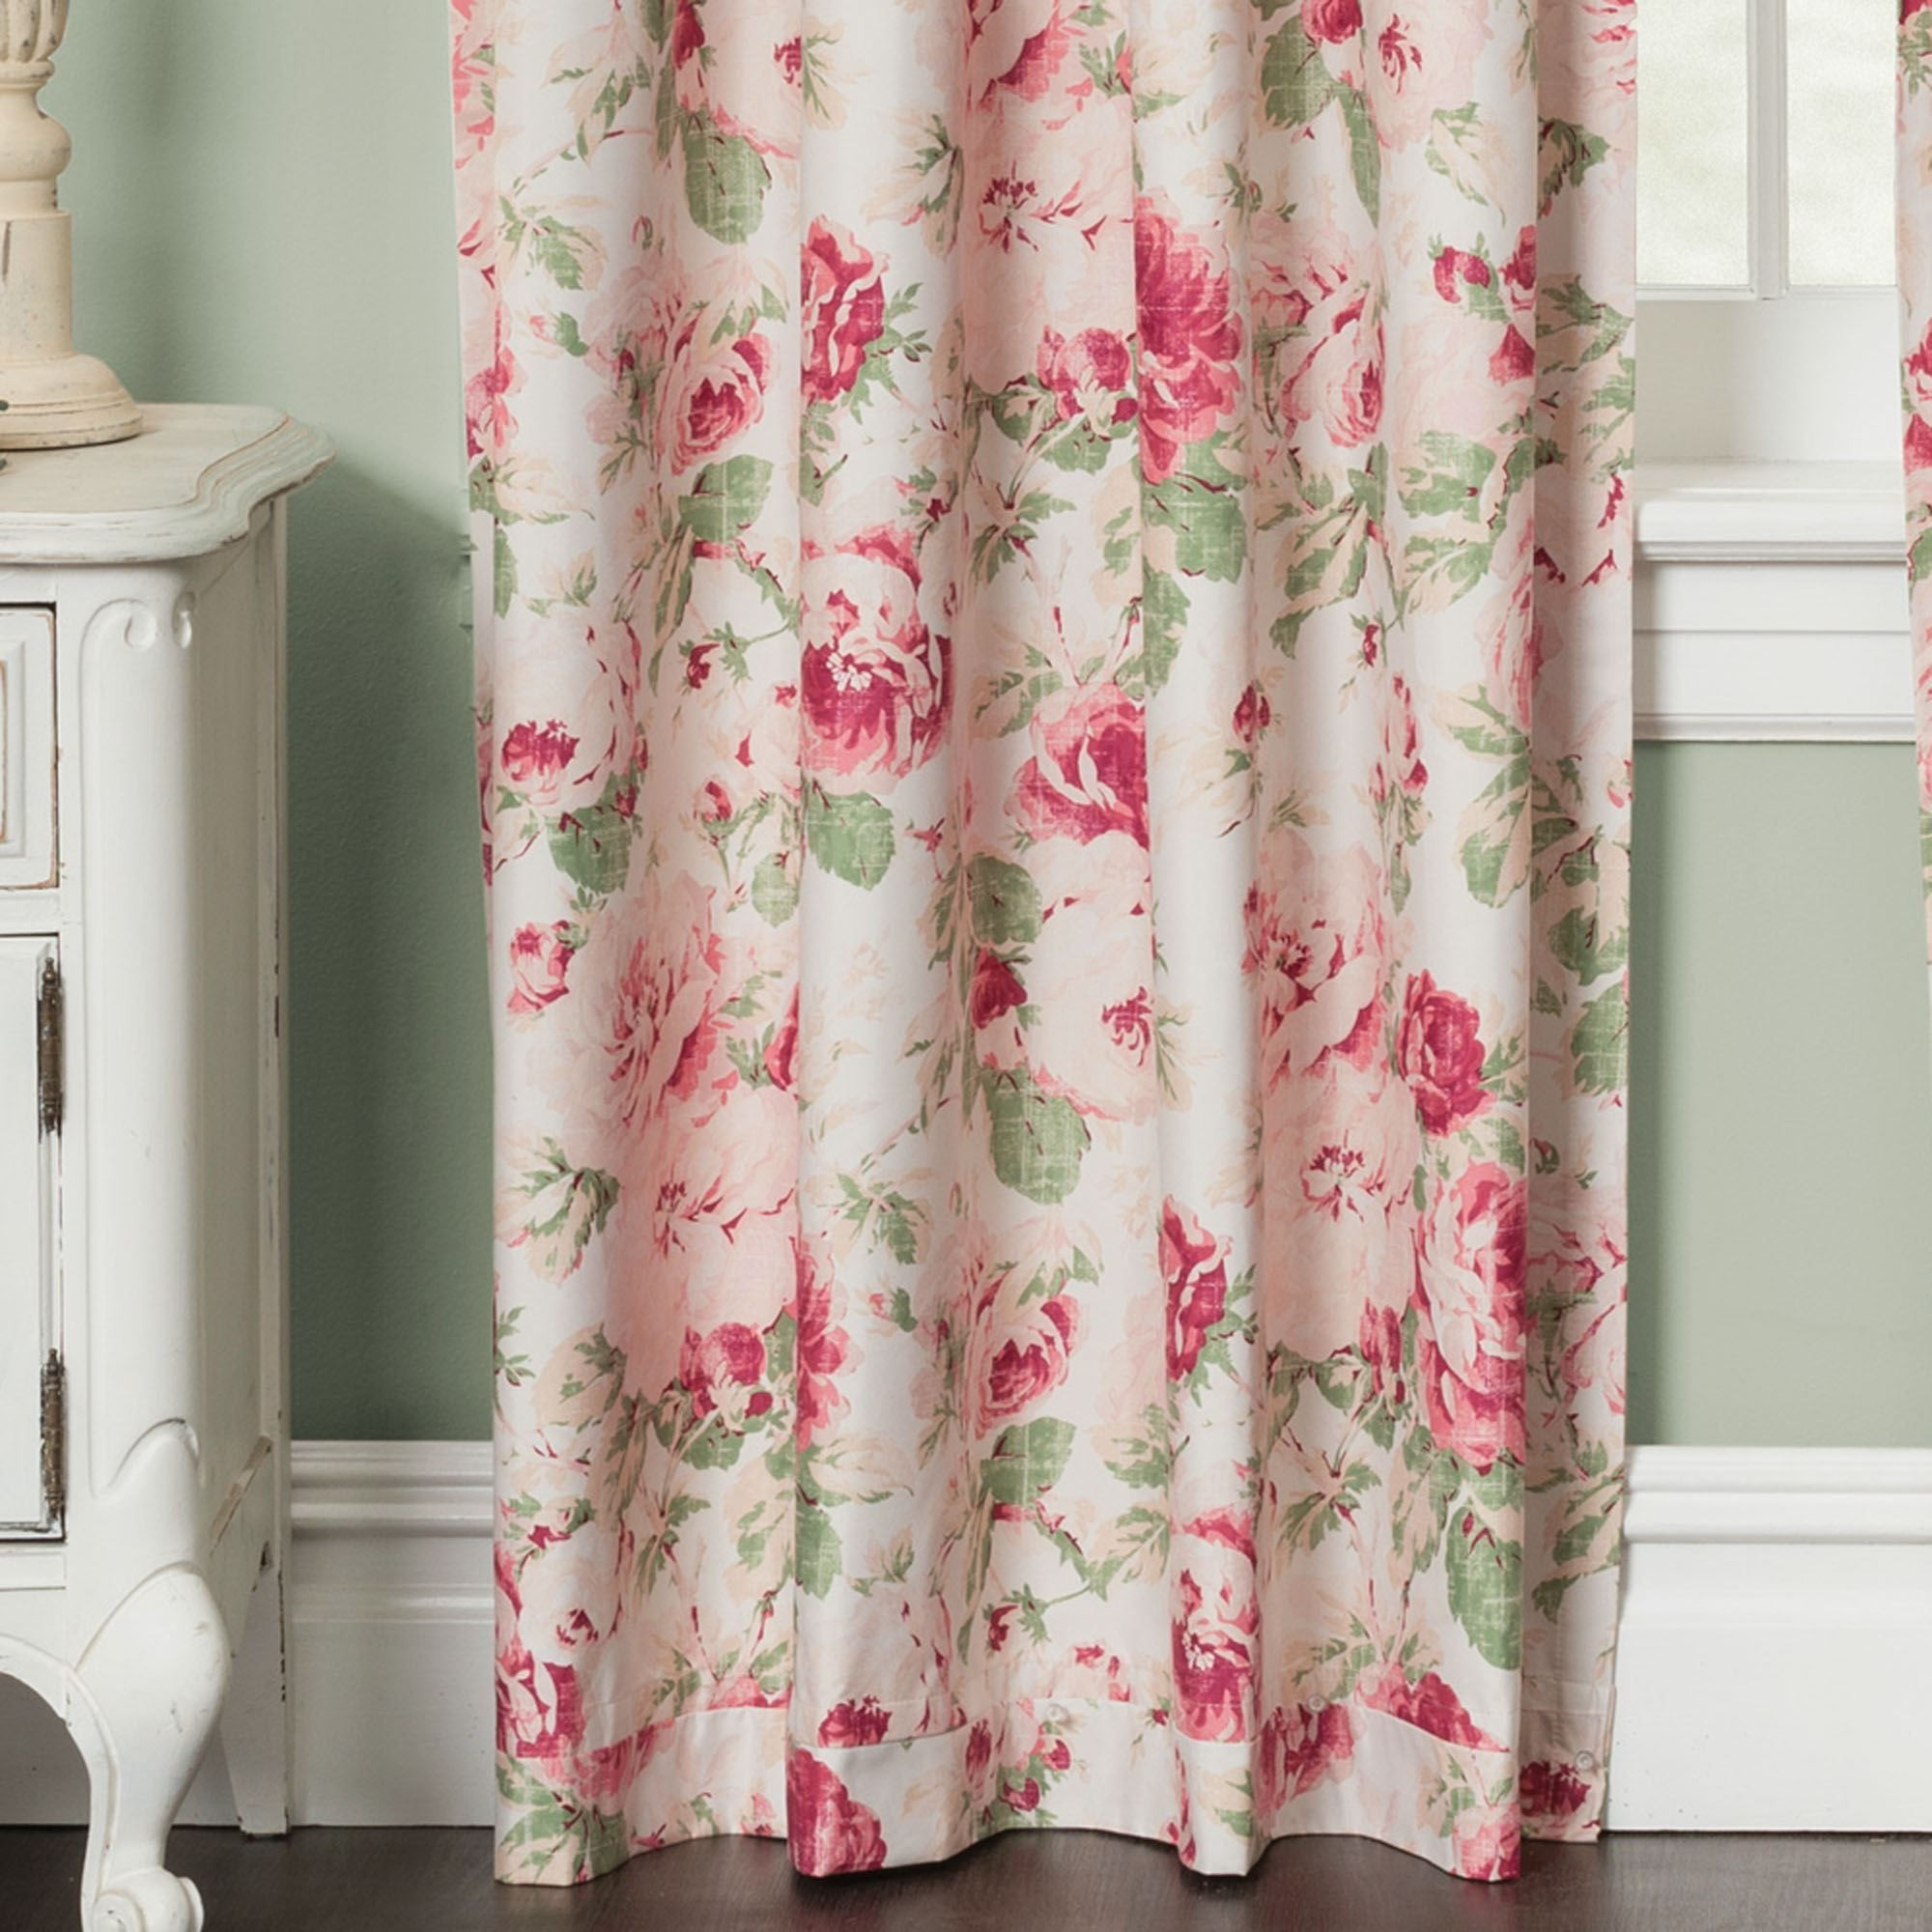 p rug terrell mats piece dusty roses bath fusion curtain rose curtains and rugs set shower